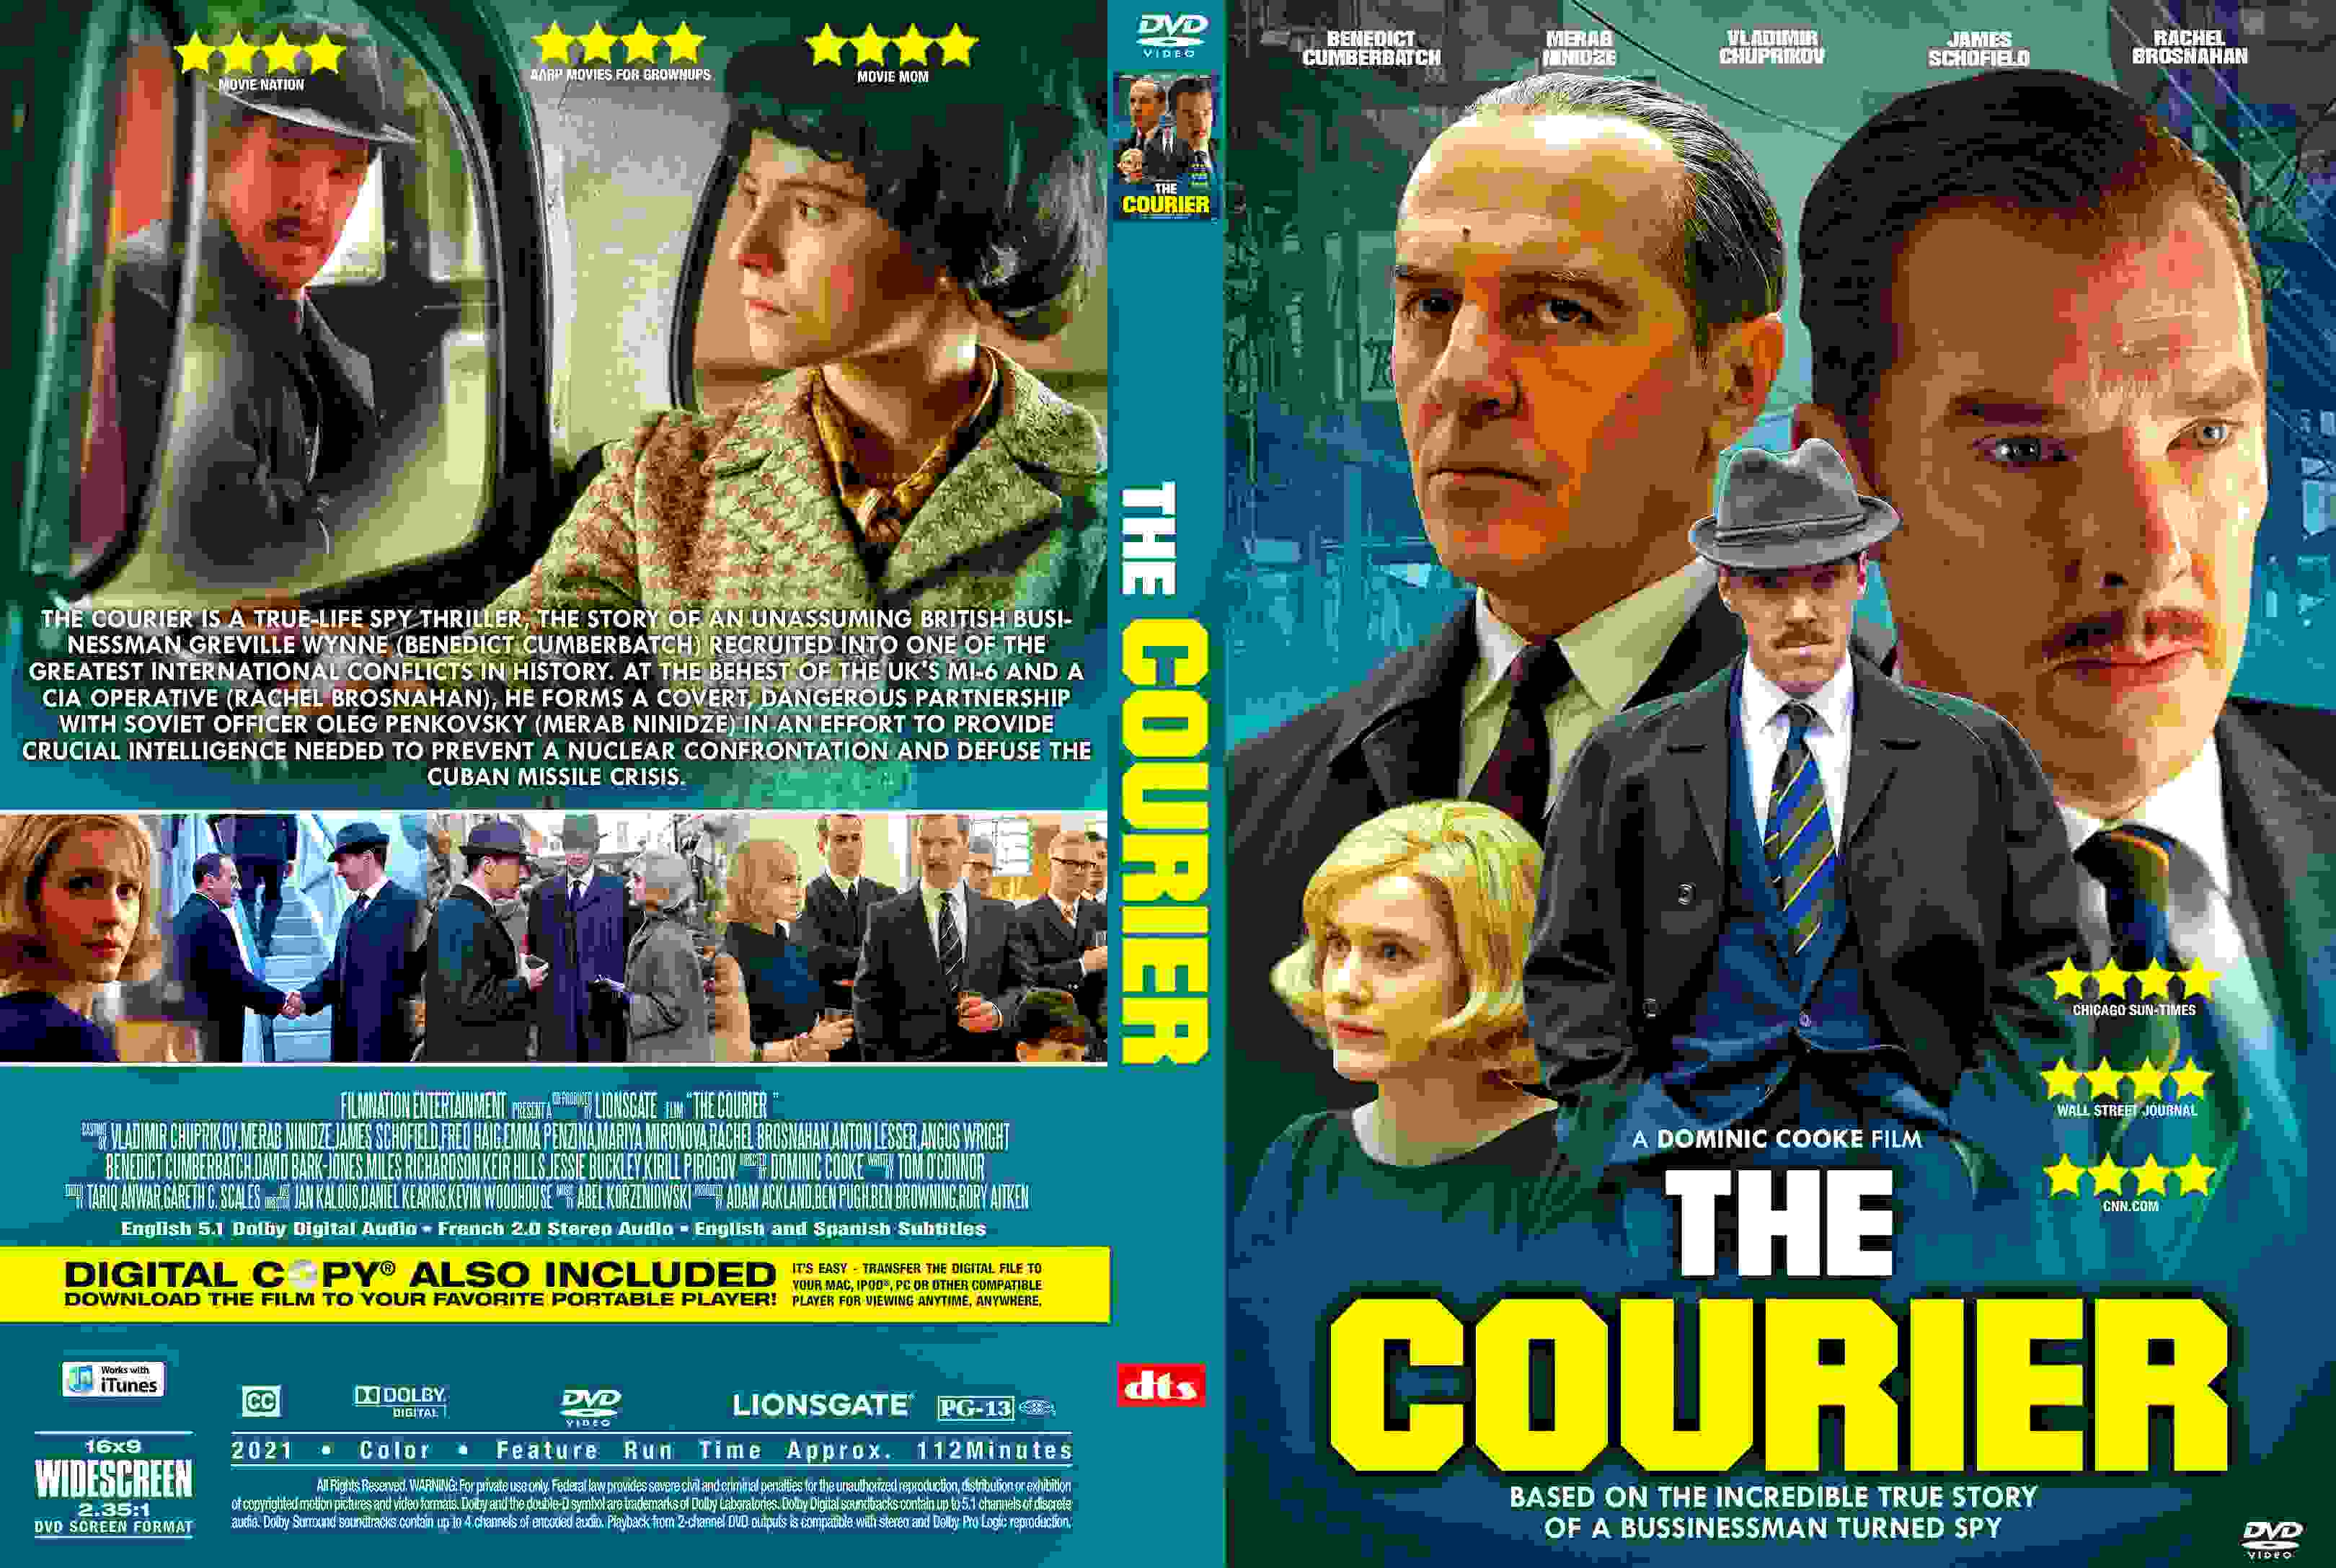 Download The Courier V2 2021 DVD Cover - Cover Addict